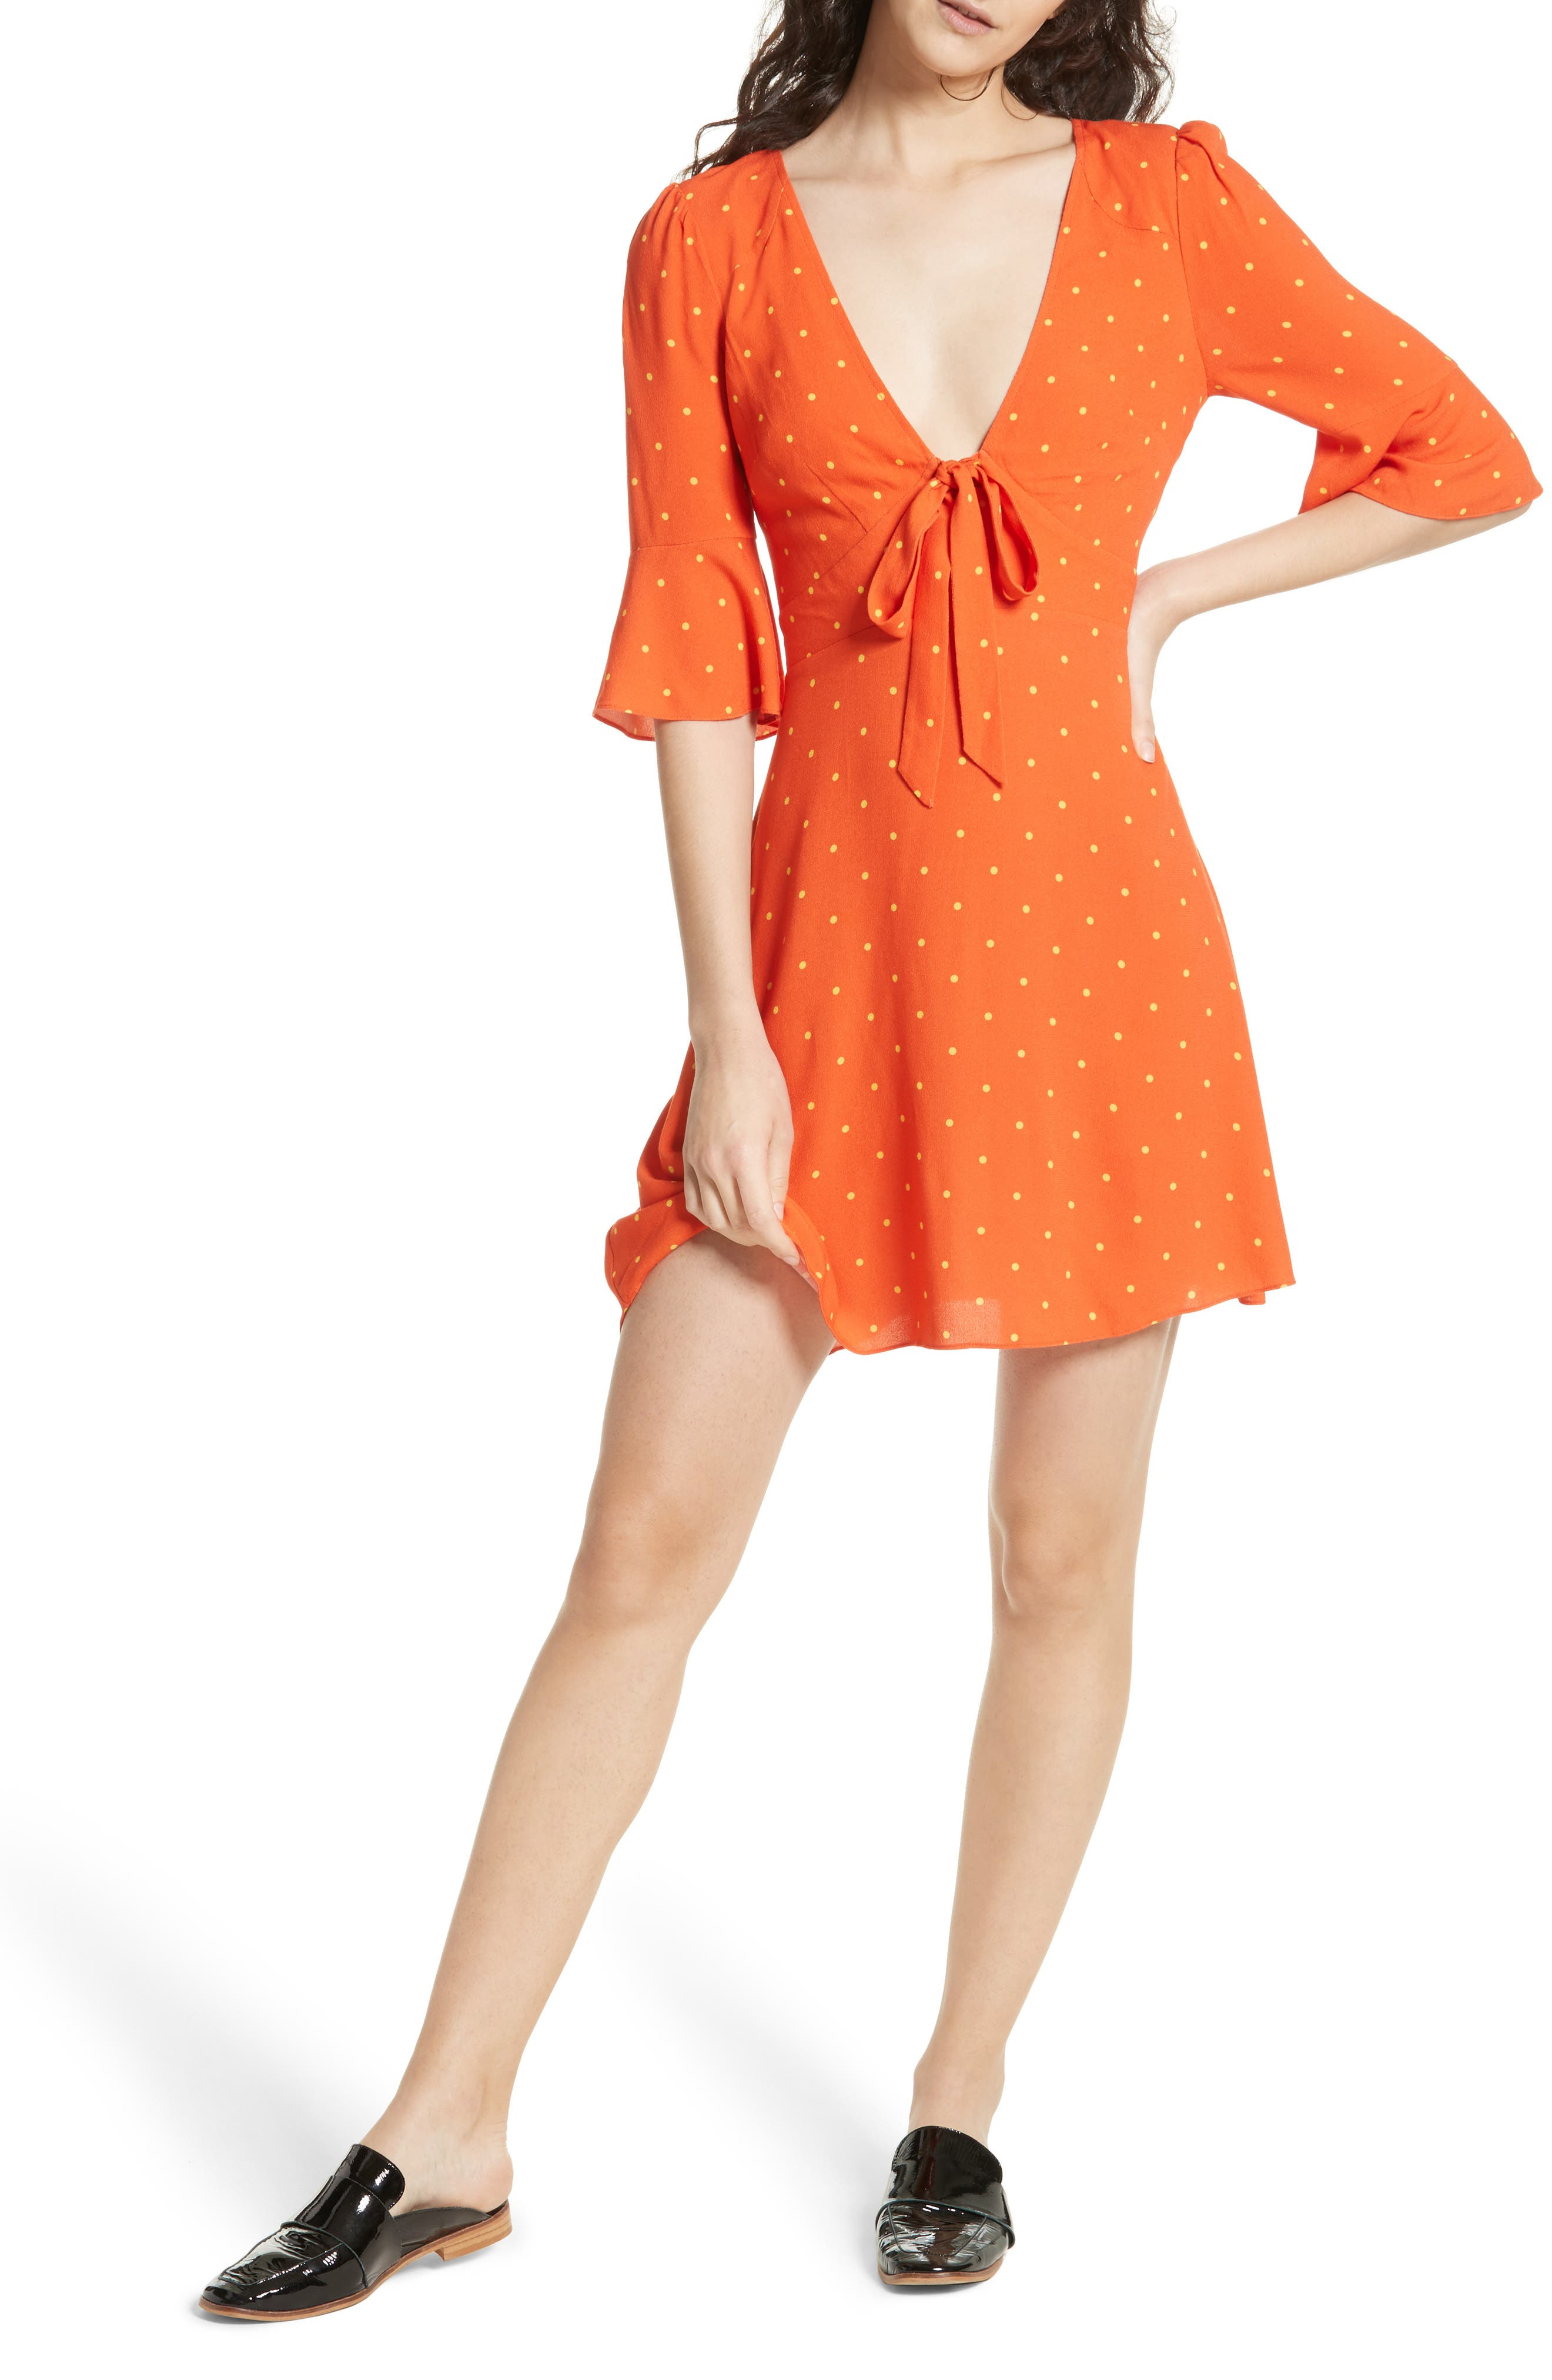 All Yours Minidress,                         Main,                         color, Red Combo